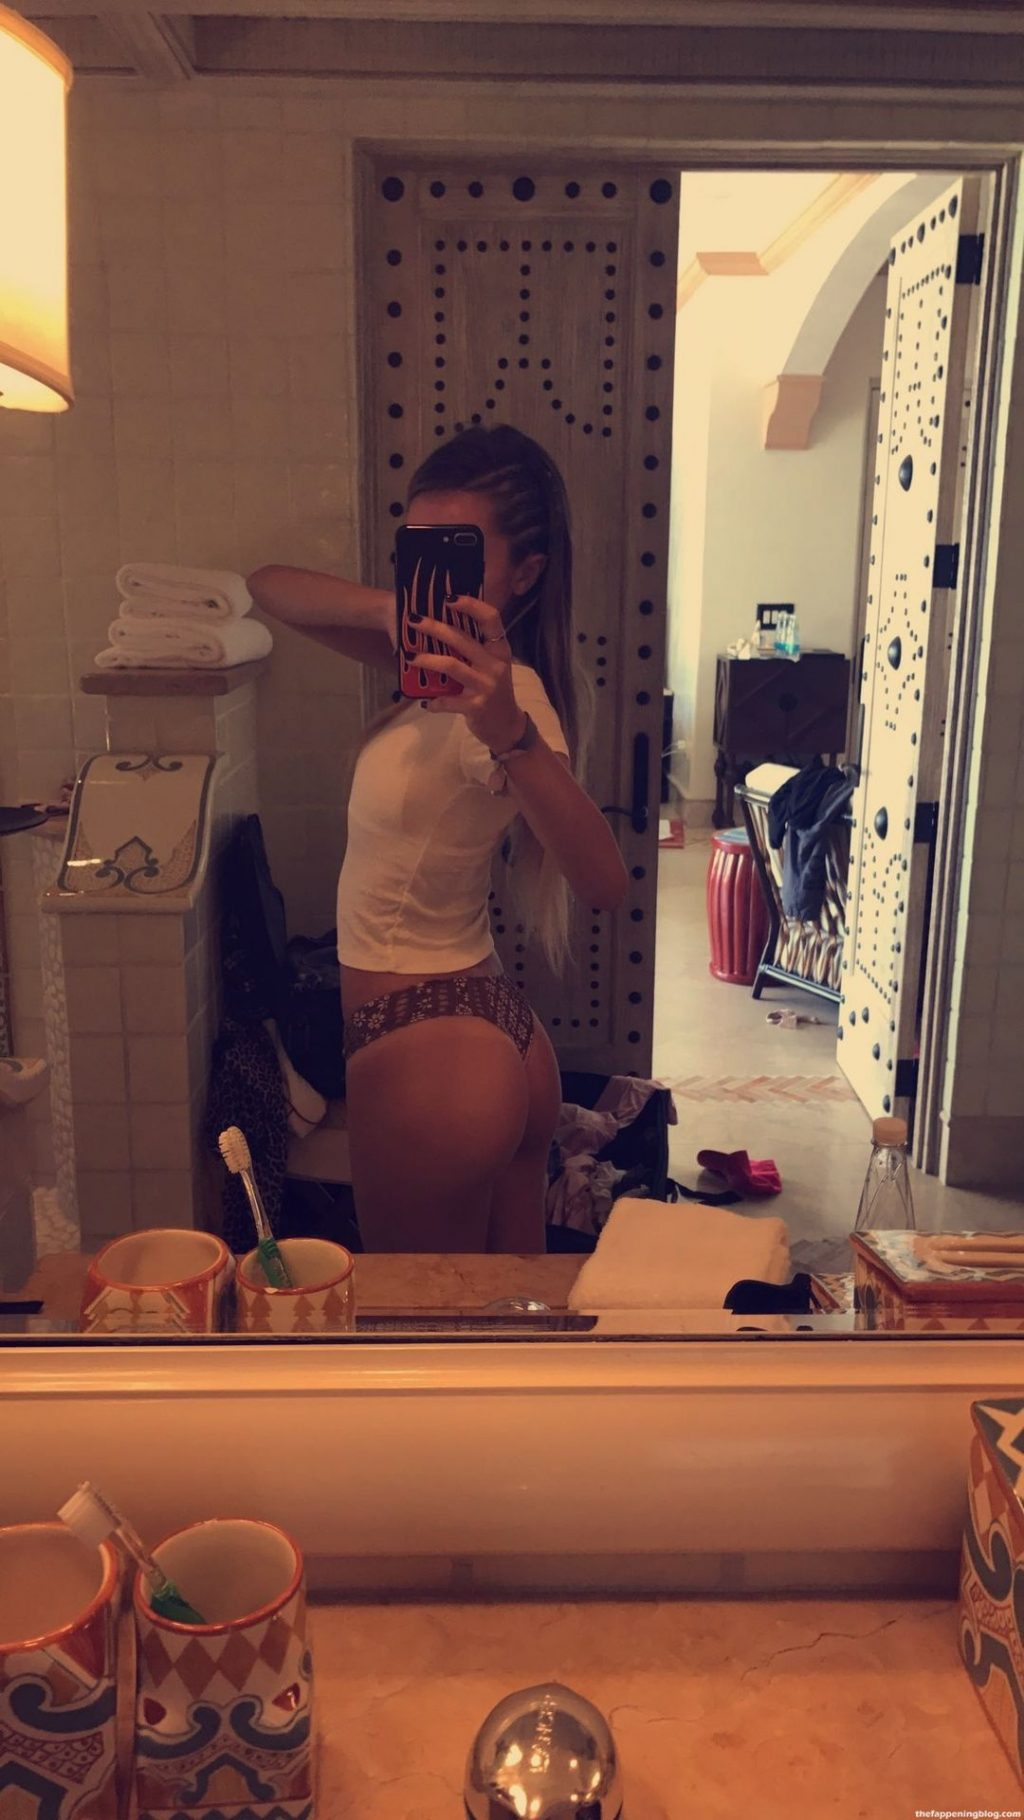 Delilah Belle Hamlin Nude Leaked The Fappening (49 Photos + Videos)